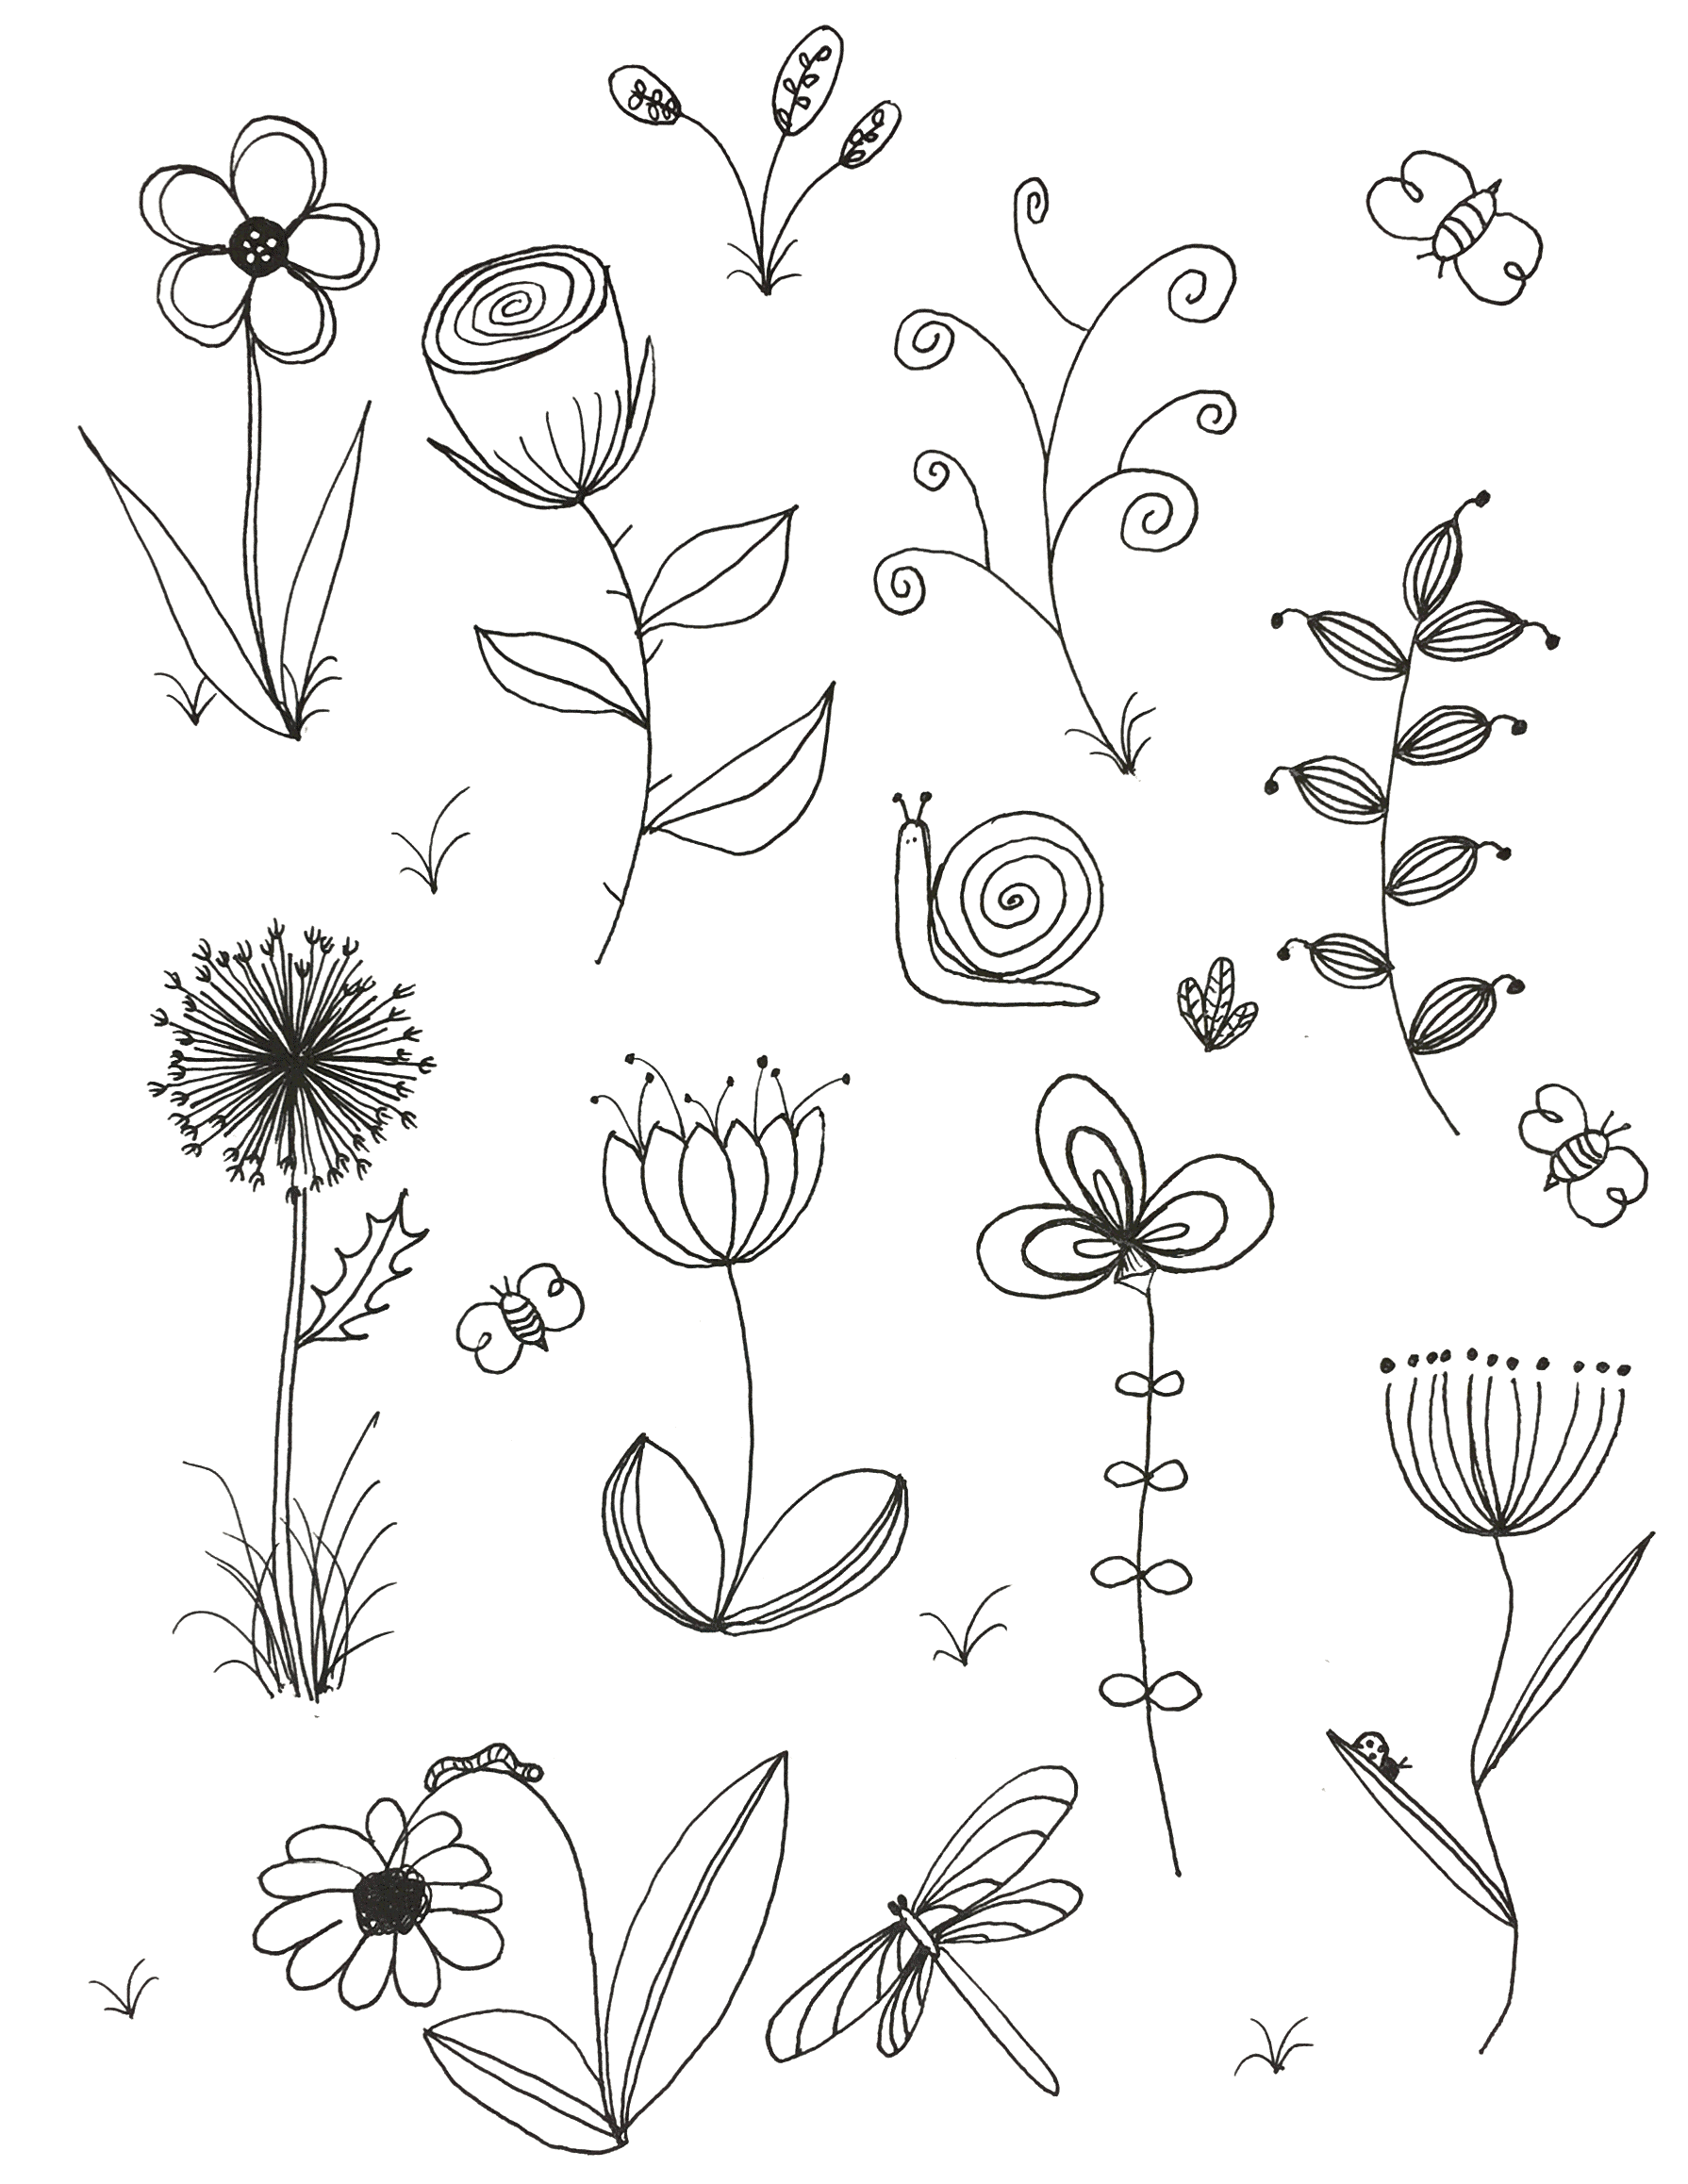 Flower Plant Line Drawing : My original art inspired by many doodle flower line